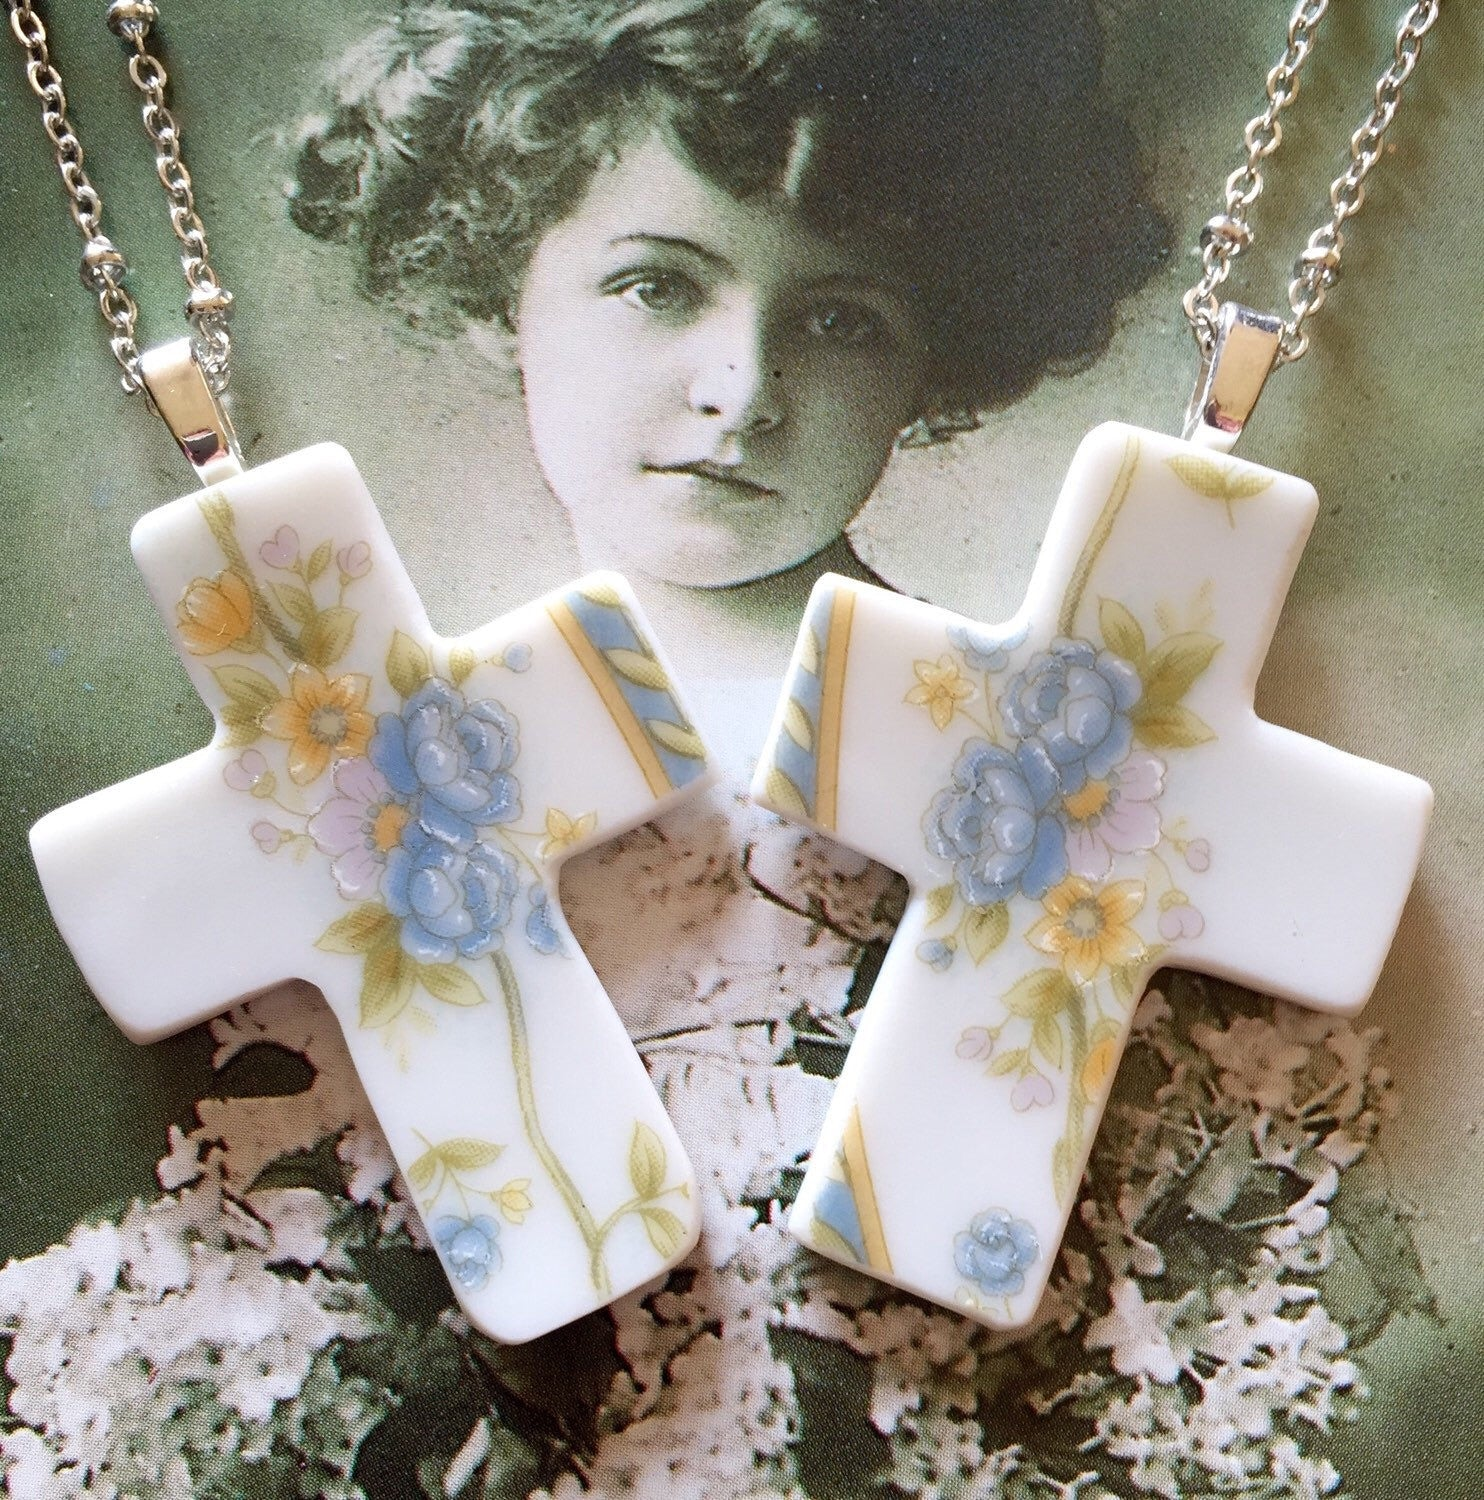 Floral cross necklace